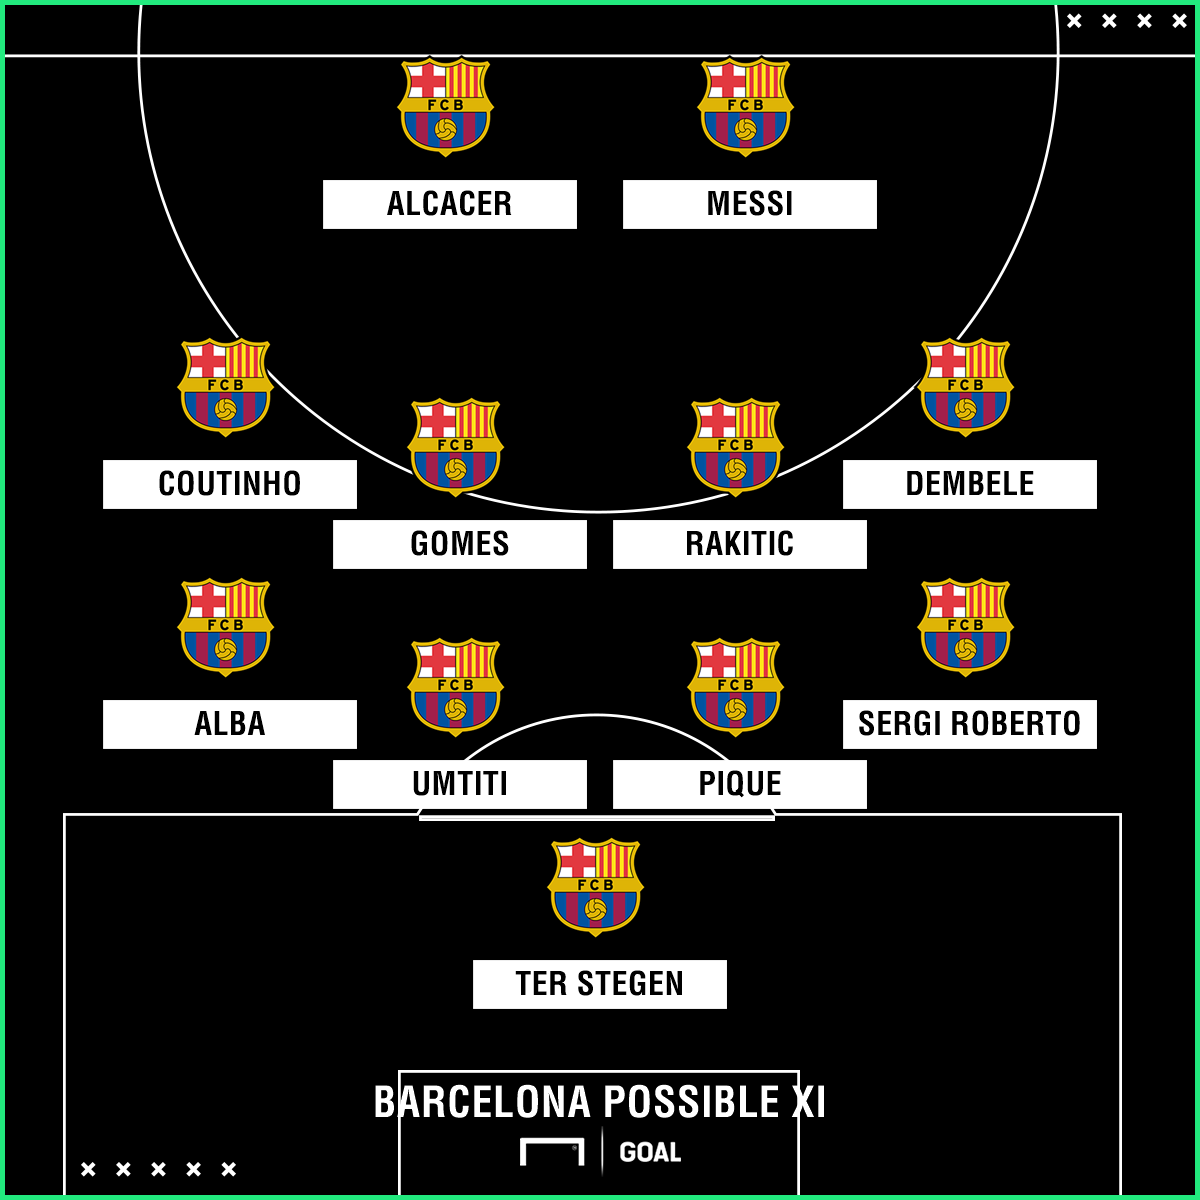 Barcelona possible XI Athletic